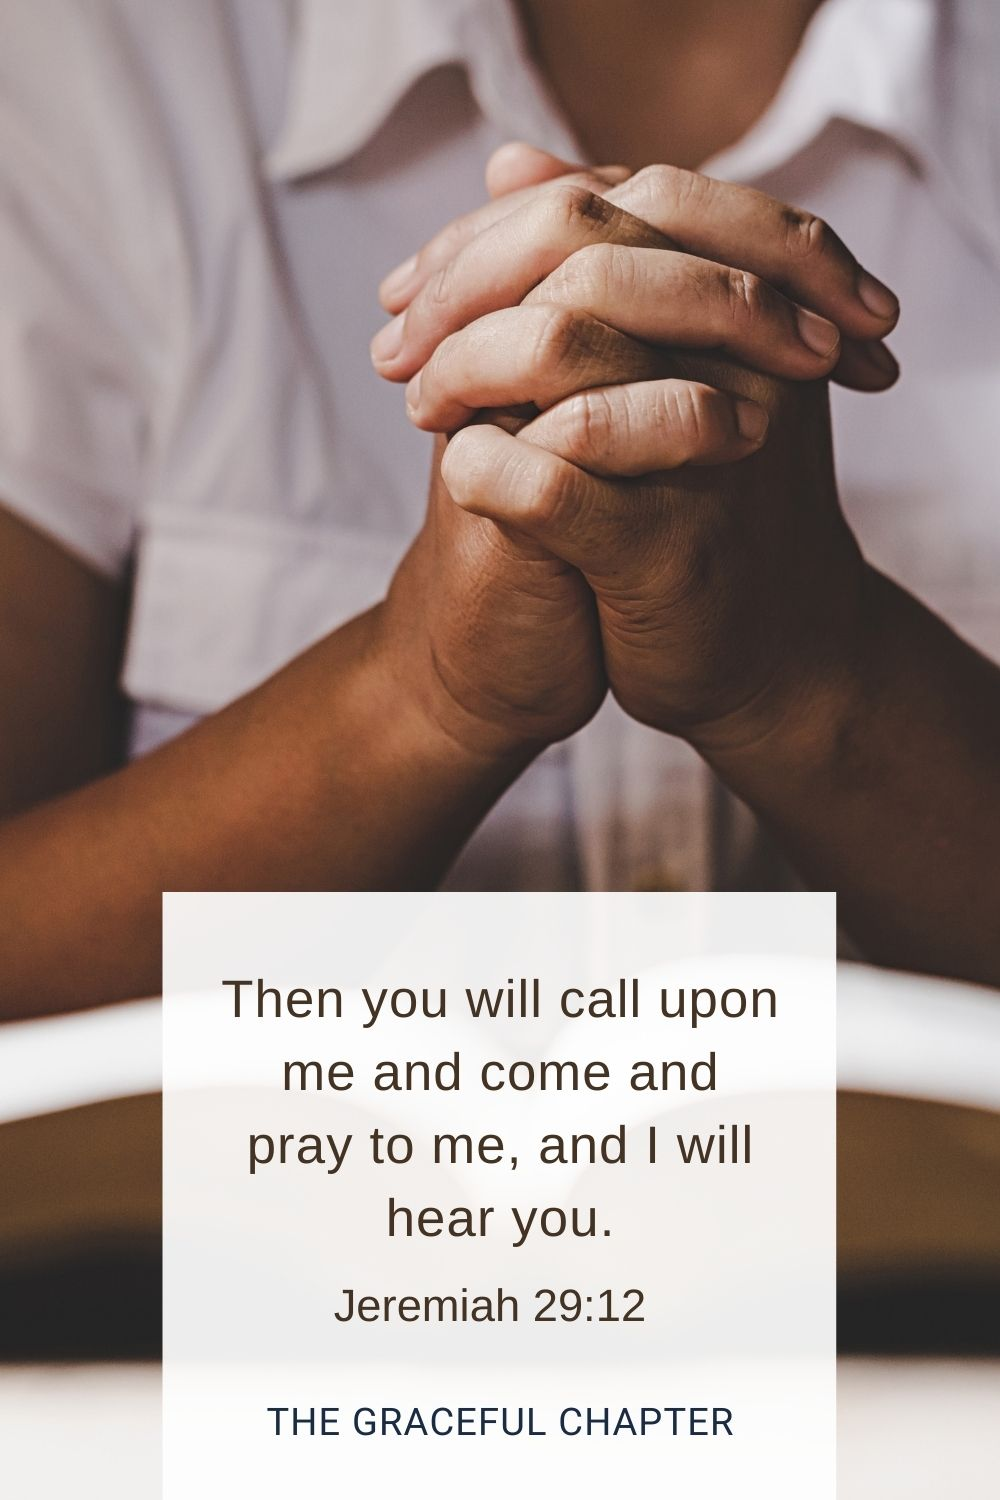 Then you will call upon me and come and pray to me, and I will hear you. Jeremiah 29:12